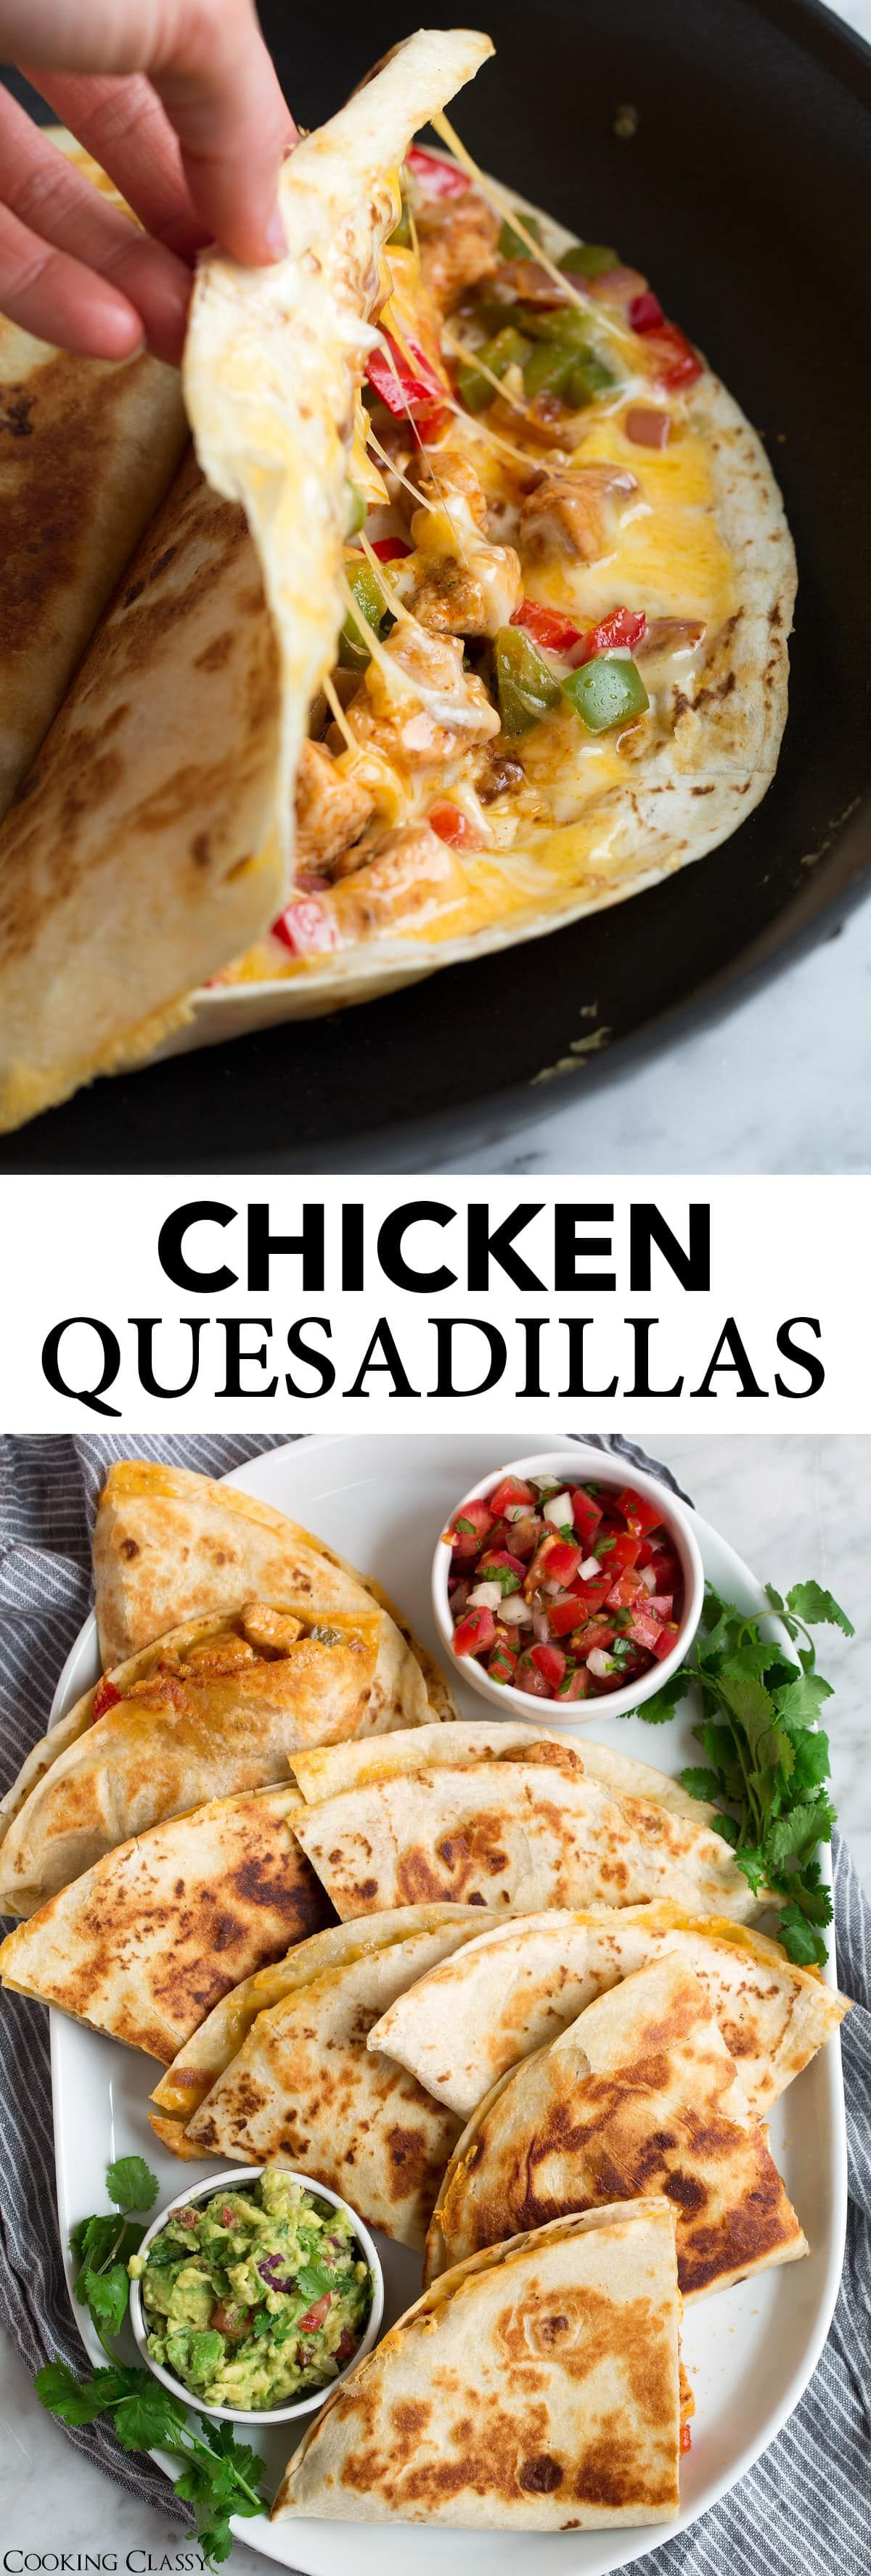 Loaded Chicken Quesadillas  The ultimate Quesadillas recipe These are brimming with two kinds of gooey melted cheese and a flavorful fajita style chicken and sauté...